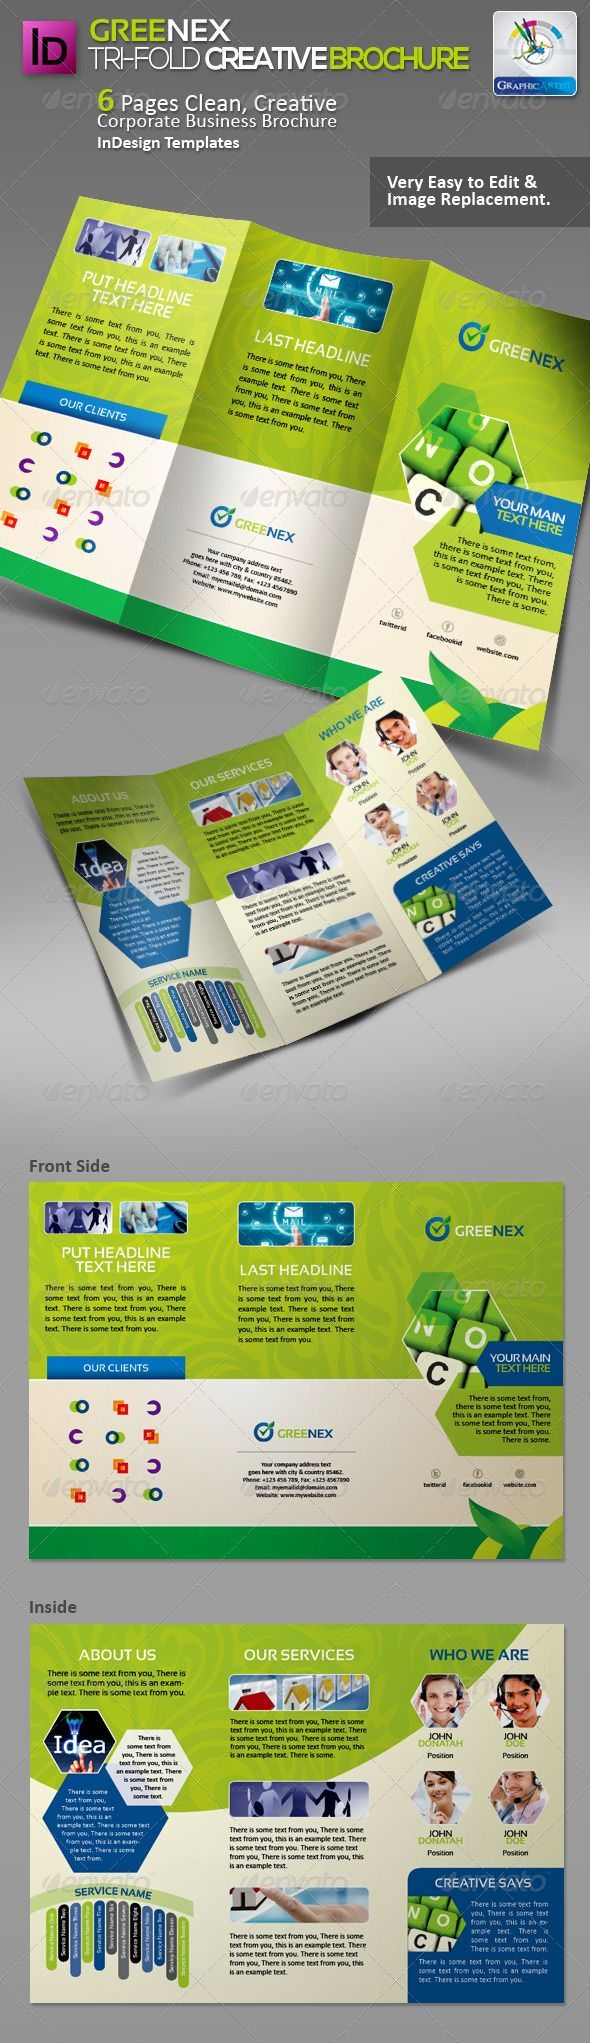 Greenex Tri-fold Creative Brochure  #GraphicRiver         Greenex Tri-fold Clean Corporate Business Brochure for multipurpose use,  quality design, Clean, professional and modern brochure template save your time & cost. - size: 210×297mm + bleed & Trim Mark  - Layered INDD (Including Vector Elements & Icons)  - CMYK and Fully Resizable & Vector   Features > This template is ideal for any business presentation.  > The style is sober, both dynamic and readable.  > Sample texts and images are easy to replace.  > The template contain Layered INDD & Vector EPS files (Elements & Icons).  > You can change everything, if the colors or effects are not appropriate.  > Picture Images html links inside in help file.  Used Fonts & Images Used all fonts & picture images Name & Available Links is included in the Support .txt File in Main Files. If you like, please rate this…  Also Available   01_Greenex Business Card :  graphicriver /item/benxgreen-corporate-business-cards/1437489?WT.ac=portfolio&WT.seg_1=portfolio&WT.z_author=GraphicArtist  02_Greenex PowerPoint Templates :  graphicriver /item/greenex-creative-powerpoint-templates/3654165?WT.ac=portfolio&WT.seg_1=portfolio&WT.z_author=GraphicArtist  03_Greenex Business Proposal :  graphicriver /item/greenex-clean-creative-project-proposal/3668069?WT.ac=portfolio&WT.seg_1=portfolio&WT.z_author=GraphicArtist  04_Greenex Bi-Fold Brochure :  graphicriver /item/greenex-bifold-creative-brochure/3680190?WT.ac=portfolio&WT.seg_1=portfolio&WT.z_author=GraphicArtist  05_Greenex Tri-Fold Brochure :  graphicriver /item/greenex-trifold-creative-brochure/3691055?WT.ac=portfolio&WT.seg_1=portfolio&WT.z_author=GraphicArtist  06_Greenex Sinage Pack :  graphicriver /item/greenex-sinage-solution-pack/3695862?WT.ac=portfolio&WT.seg_1=portfolio&WT.z_author=GraphicArtist  07_Greenex Business Flyer/Ads :  graphicriver /item/greenex-corporate-business-flyerads/3702902?WT.ac=portfolio&WT.seg_1=portfolio&WT.z_author=GraphicArtist  08_Greenex CD Packages Pack :  graphicriver /item/greenex-creative-cd-sleeve-sticker/3706470?WT.ac=portfolio&WT.seg_1=portfolio&WT.z_author=GraphicArtist  09_Greenex Shopping Bag :  graphicriver /item/greenex-multipurpose-creative-shopping-bag/3706961?WT.ac=portfolio&WT.seg_1=portfolio&WT.z_author=GraphicArtist   10_Greenex FB Timeline Cover:  graphicriver /item/greenex-creative-fb-timeline-cover/3716730?WT.ac=portfolio&WT.seg_1=portfolio&WT.z_author=GraphicArtist  11_Greenex Creative PSD Invoices:  graphicriver /item/greenex-creative-psd-invoices/3721114?WT.ac=portfolio&WT.seg_1=portfolio&WT.z_author=GraphicArtist  Do You Need Professional Custom Design? I am available for freelance work. Contact me if you are interested! Please feel free to contact me when you encounter problems or have questions! Thanks…     Created: 5January13 GraphicsFilesIncluded: VectorEPS #InDesignINDD Layered: Yes MinimumAdobeCSVersion: CS2 PrintDimensions: 297x210 Tags: businessbrochure #corporate #creativebrochure #green #tri-foldbrochure